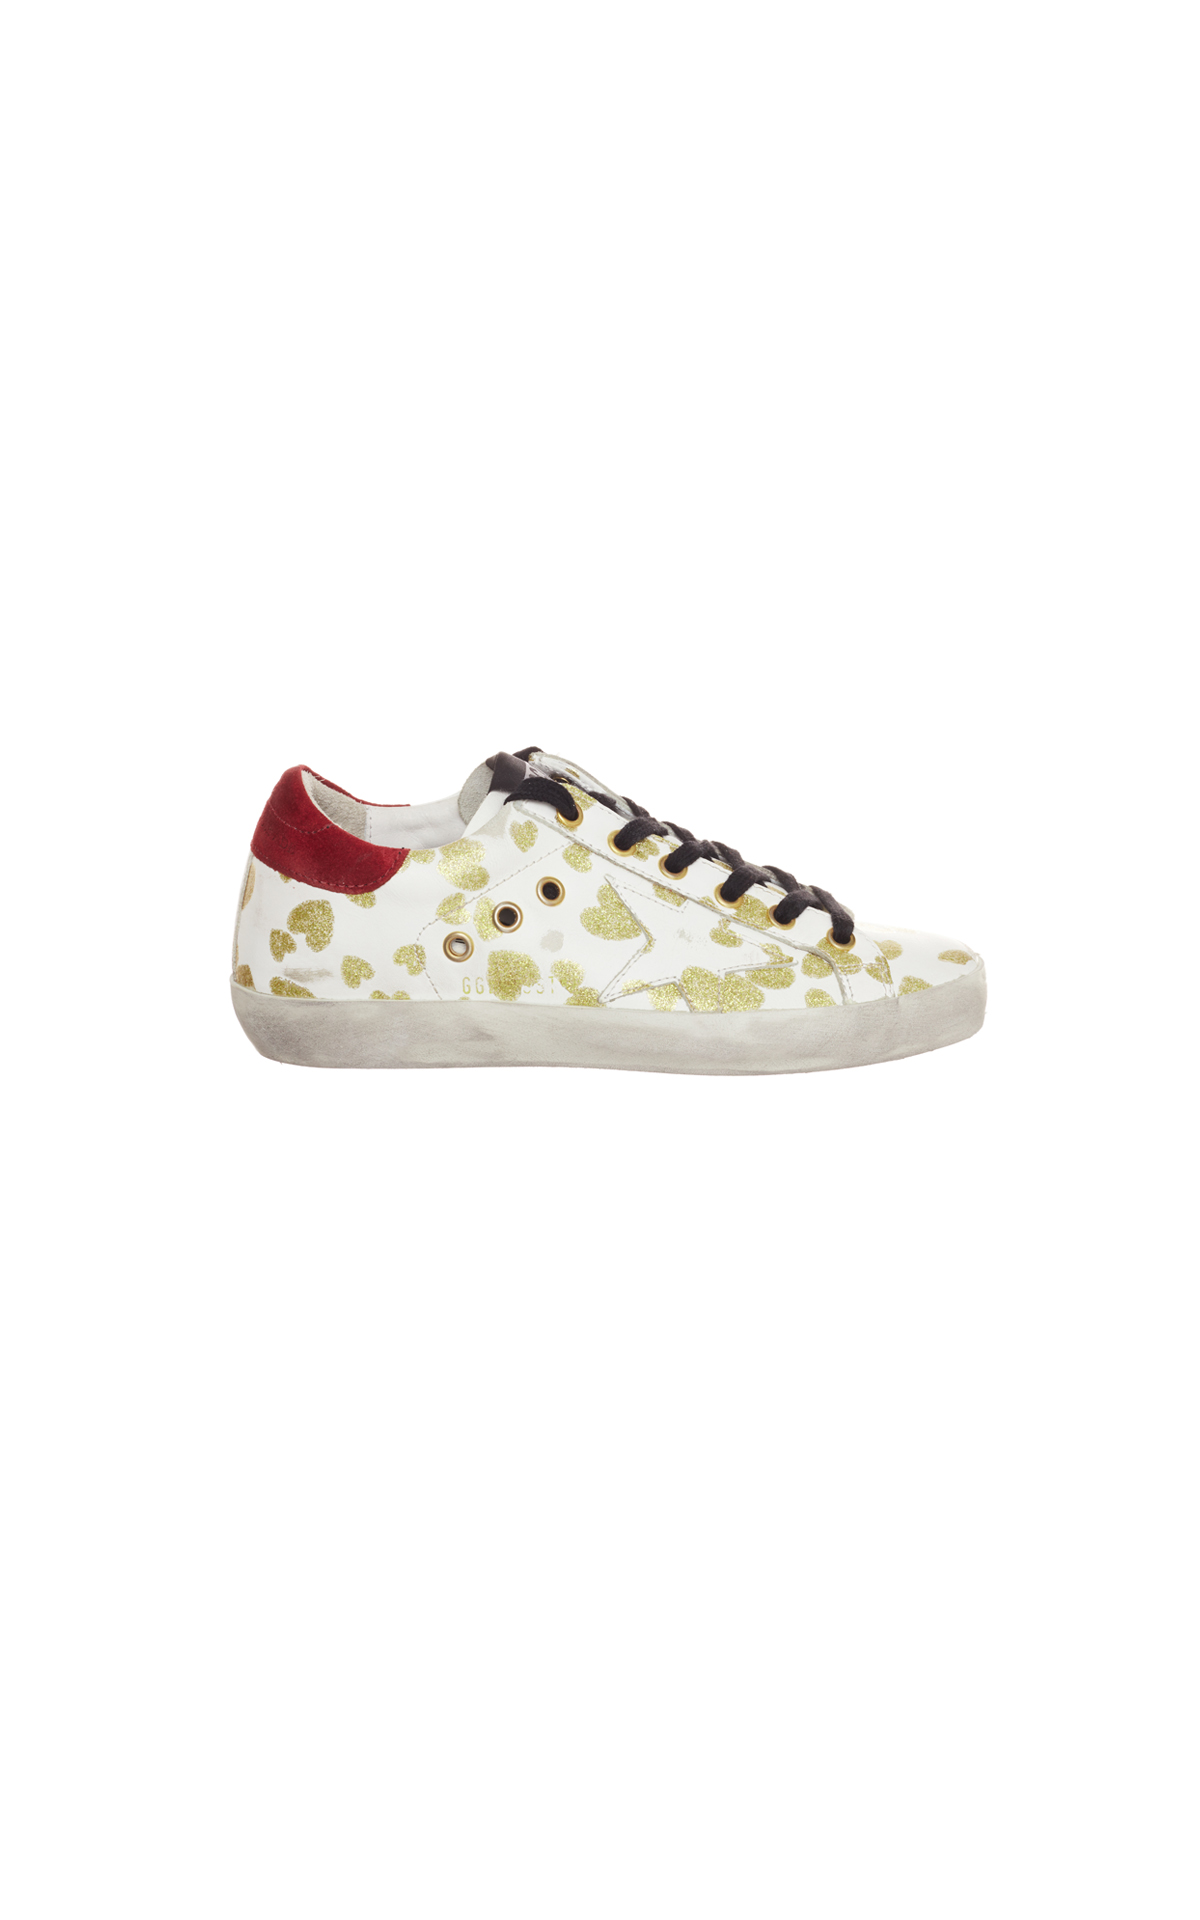 Golden Goose Golden drifted hearts superstar from Bicester Village